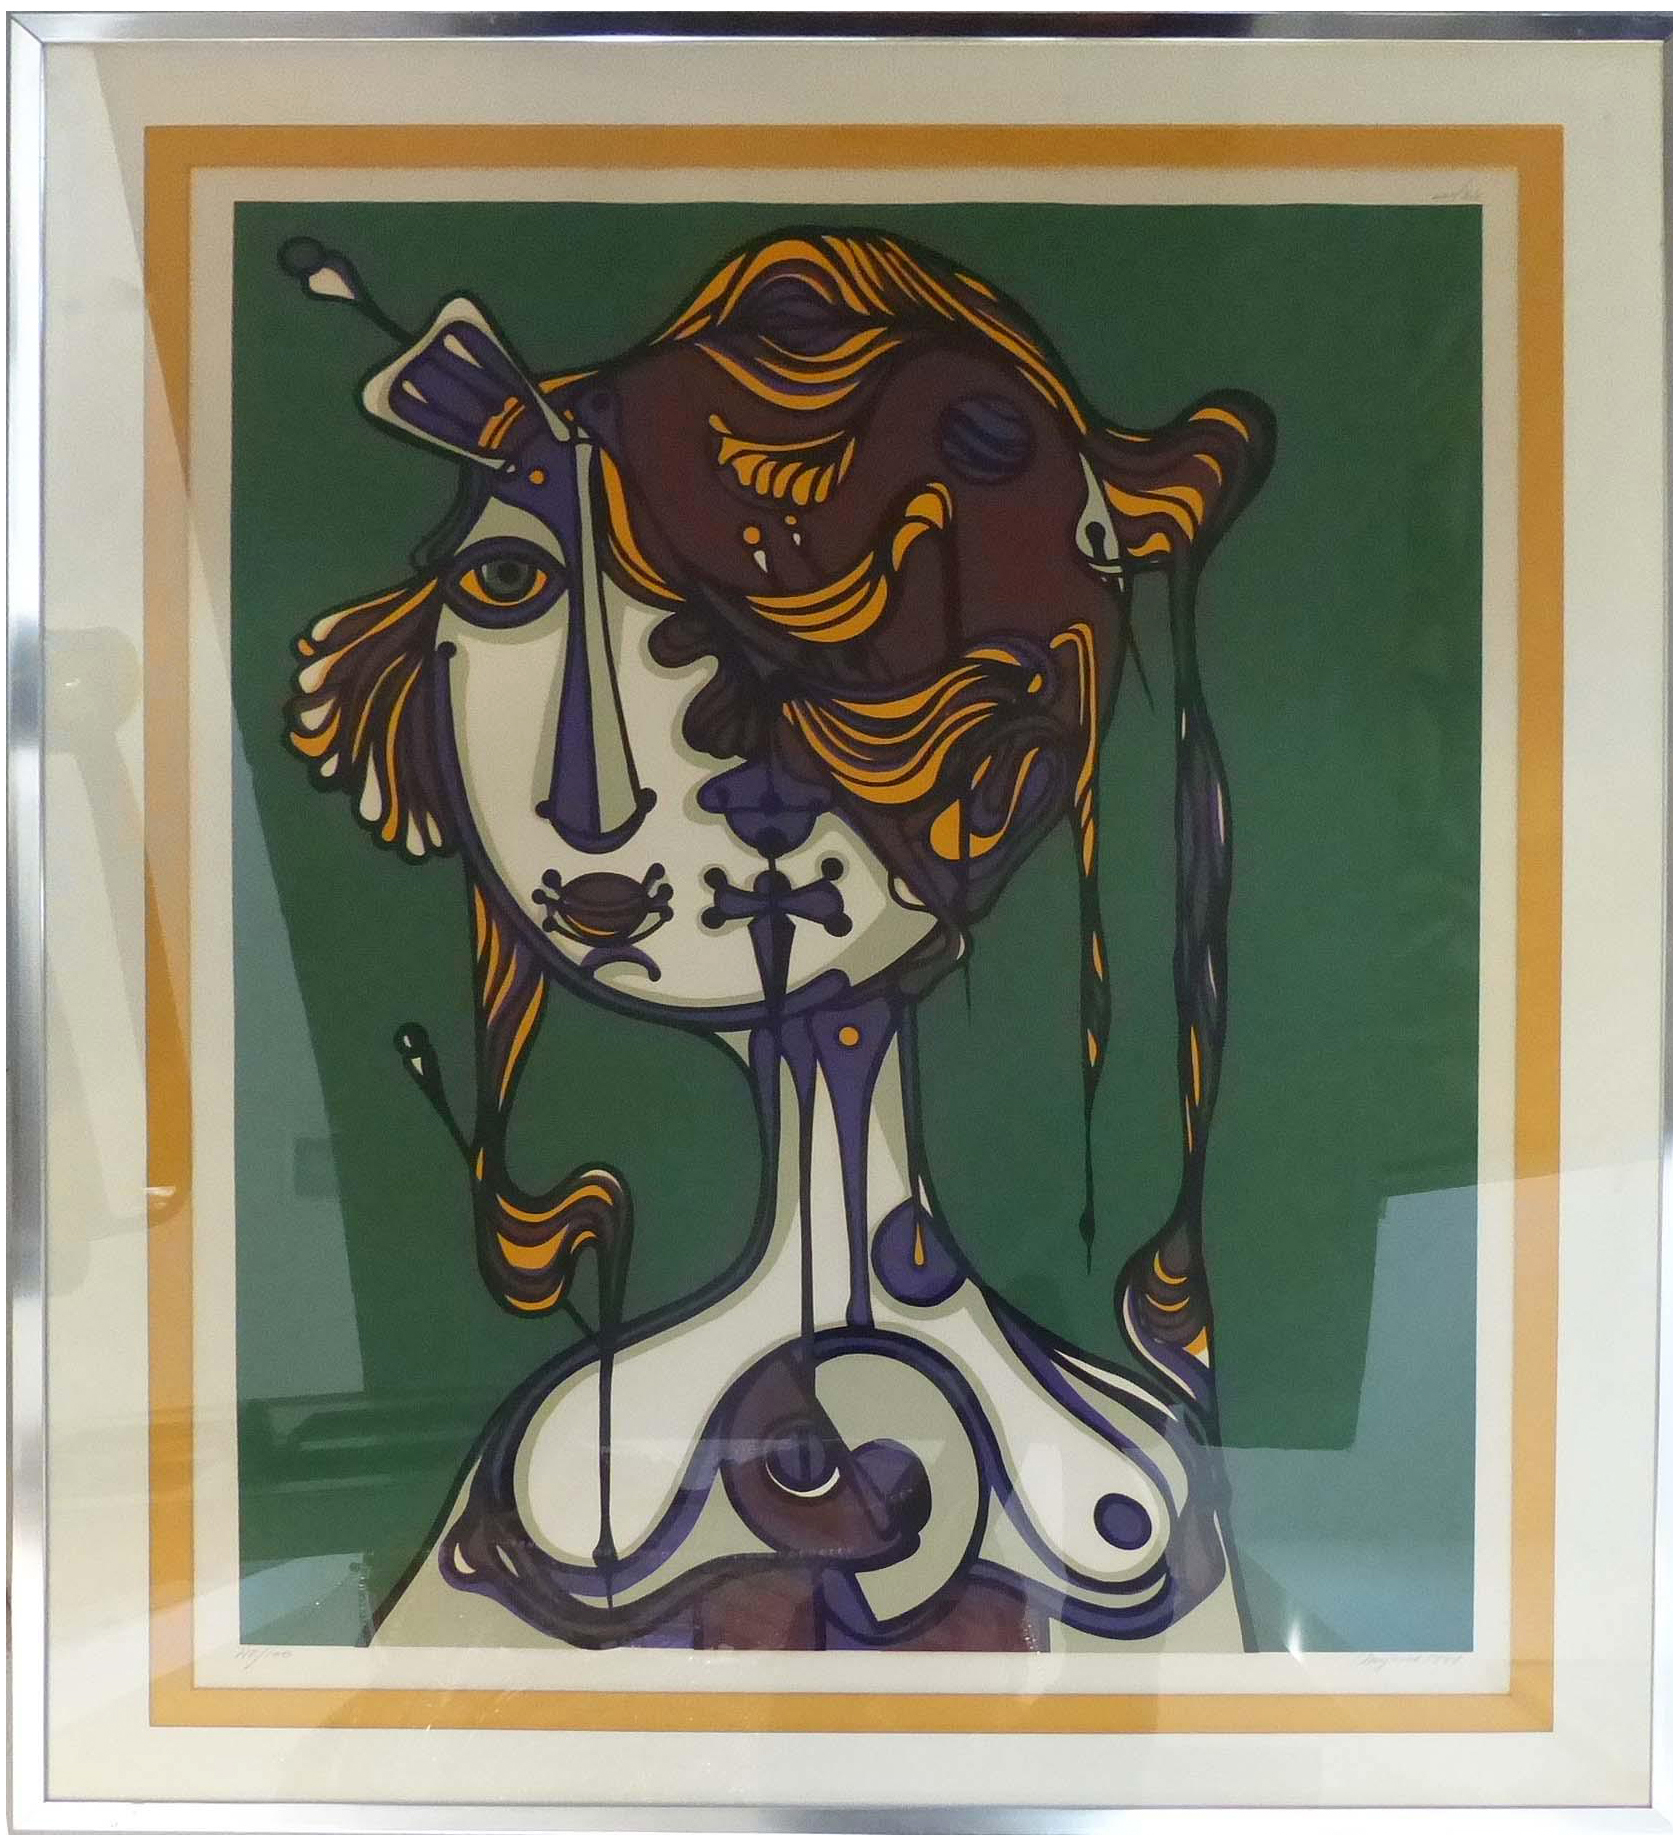 Abstract Lithograph By Jose Maria Mijares Worthgalleries Com # Muebles Jose Maria